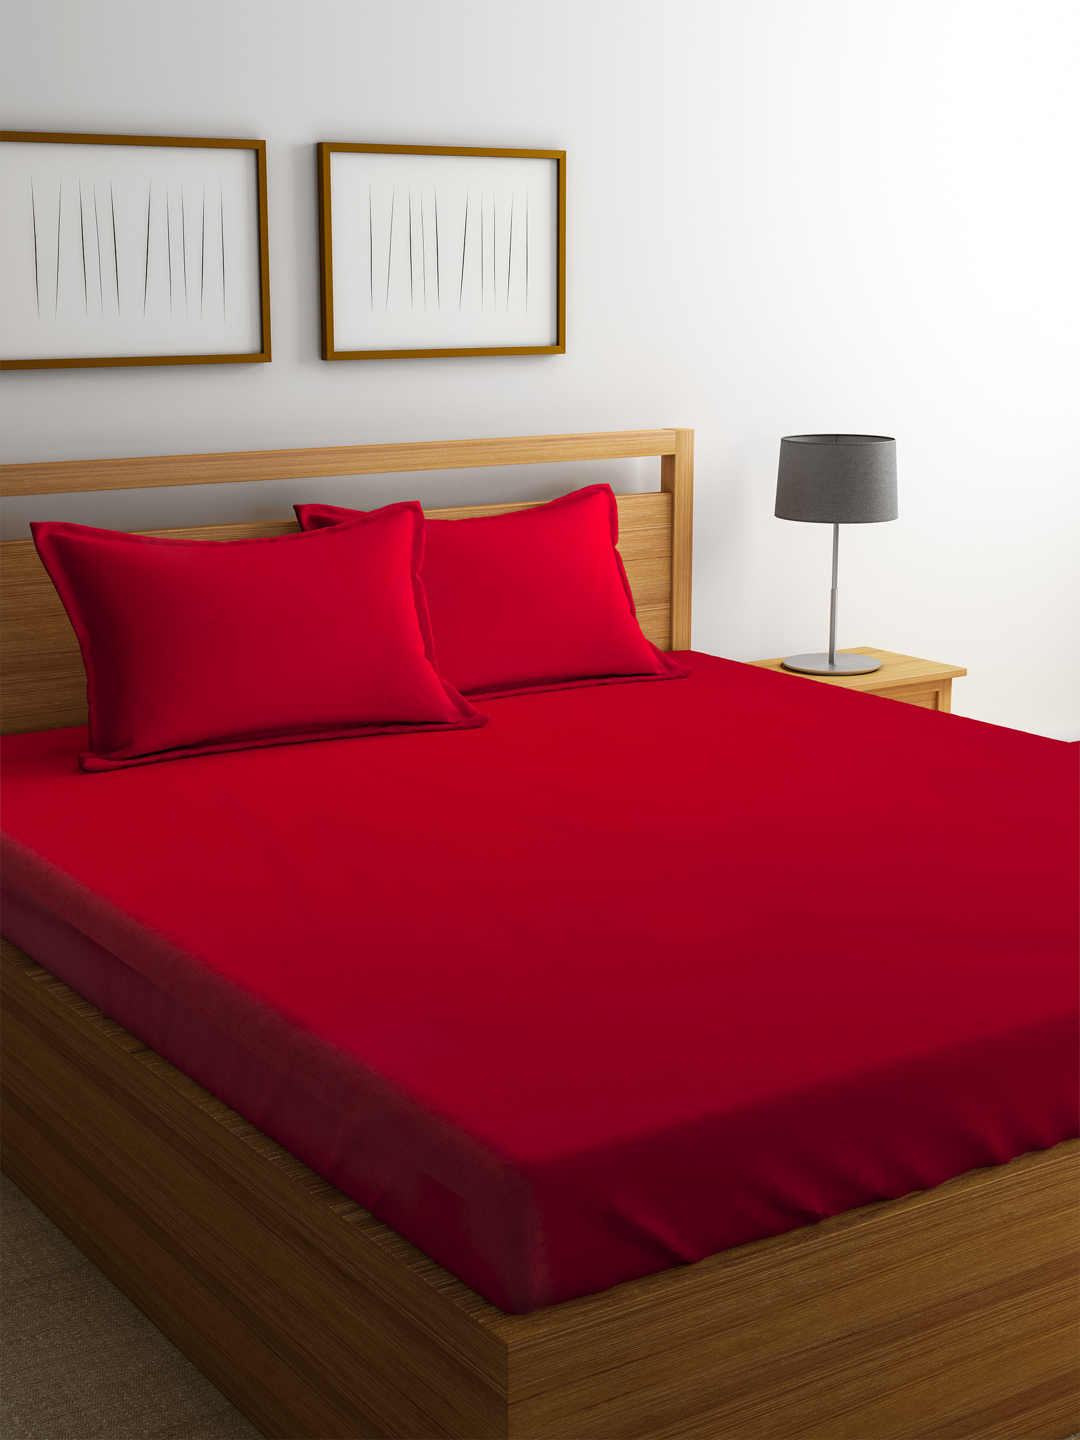 Portico Percale Bedsheet Red Cotton Double Bed Sheets in Red Colour by Portico